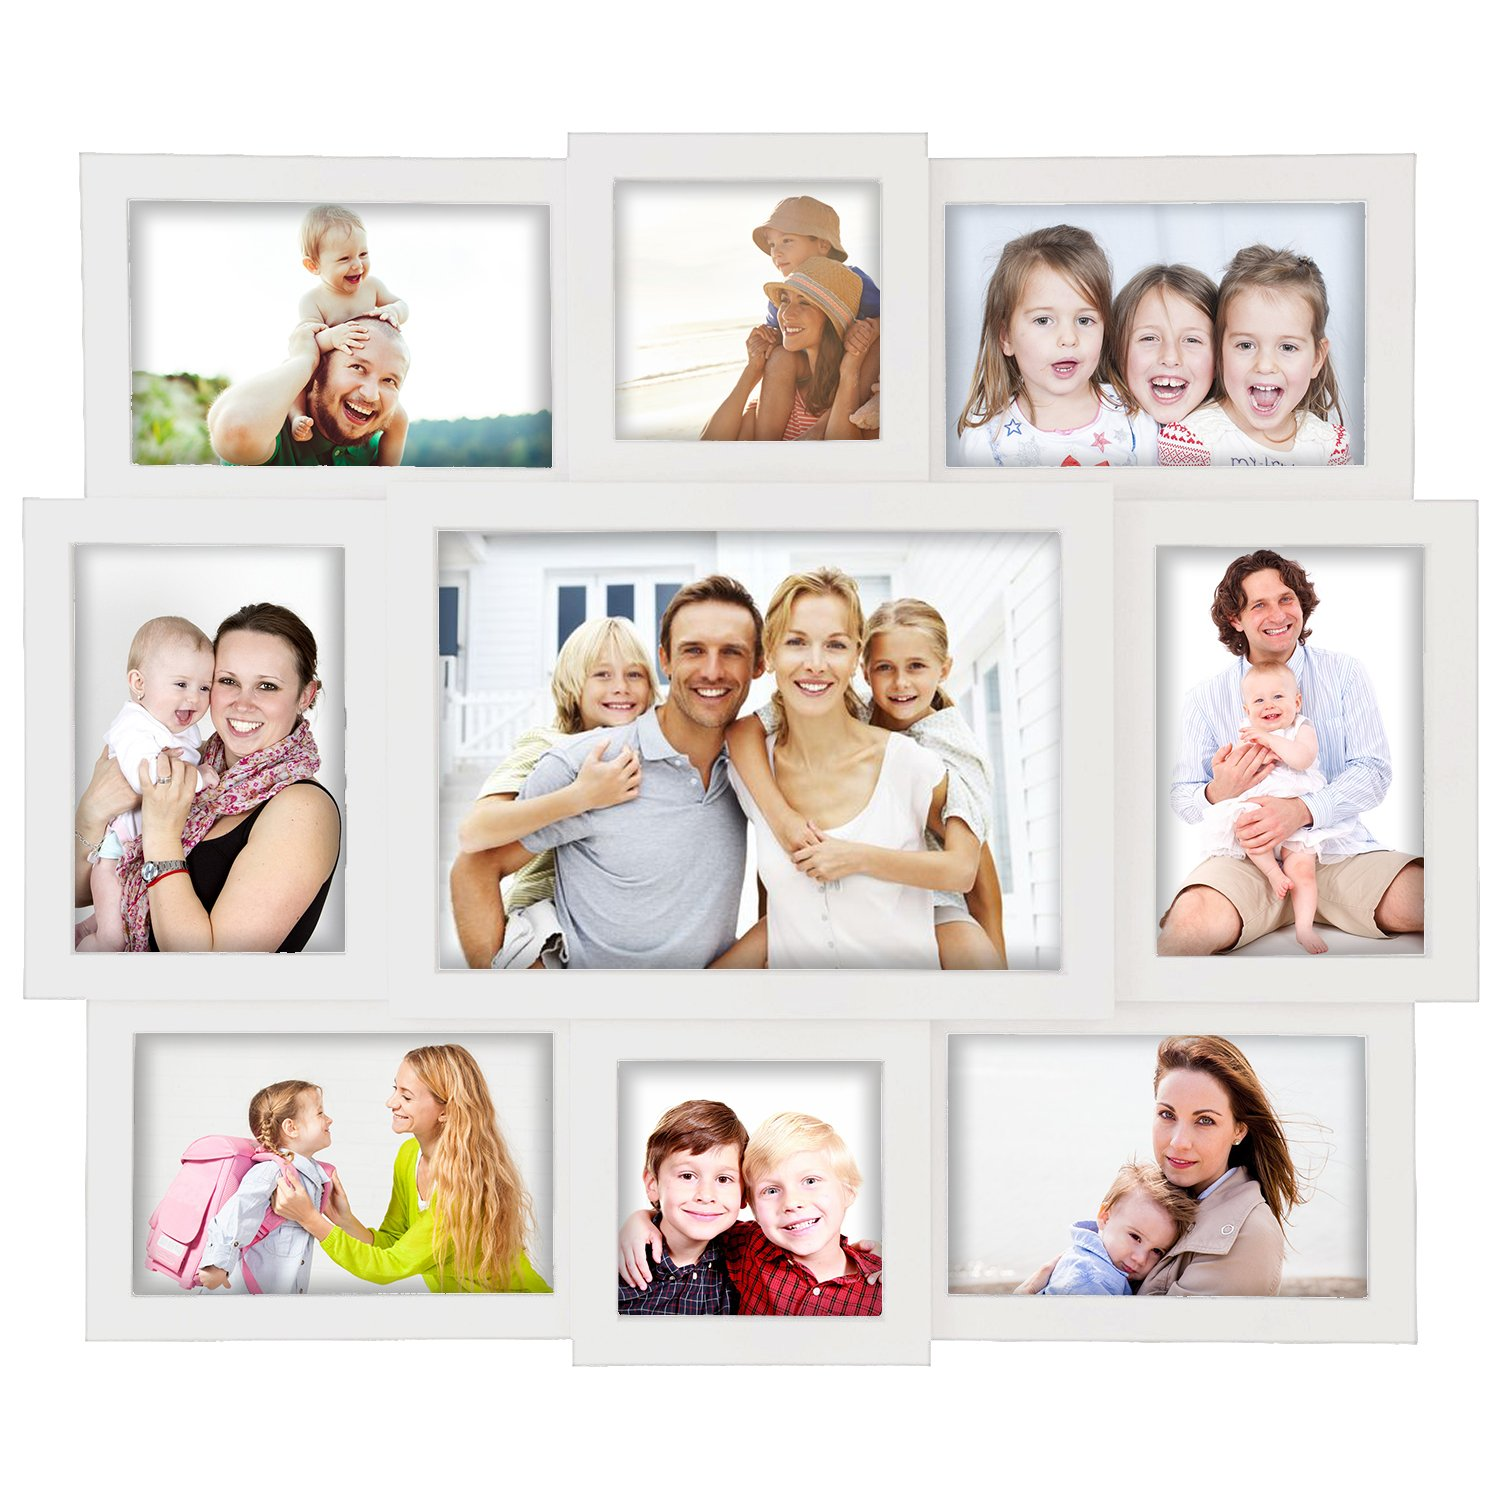 Photo Frame 16x19 White Picture Frame Selfie Gallery Collage Wall Hanging for 6x4 Photo Wall Mounting Design 9 Photo Sockets Jerry /& Maggie